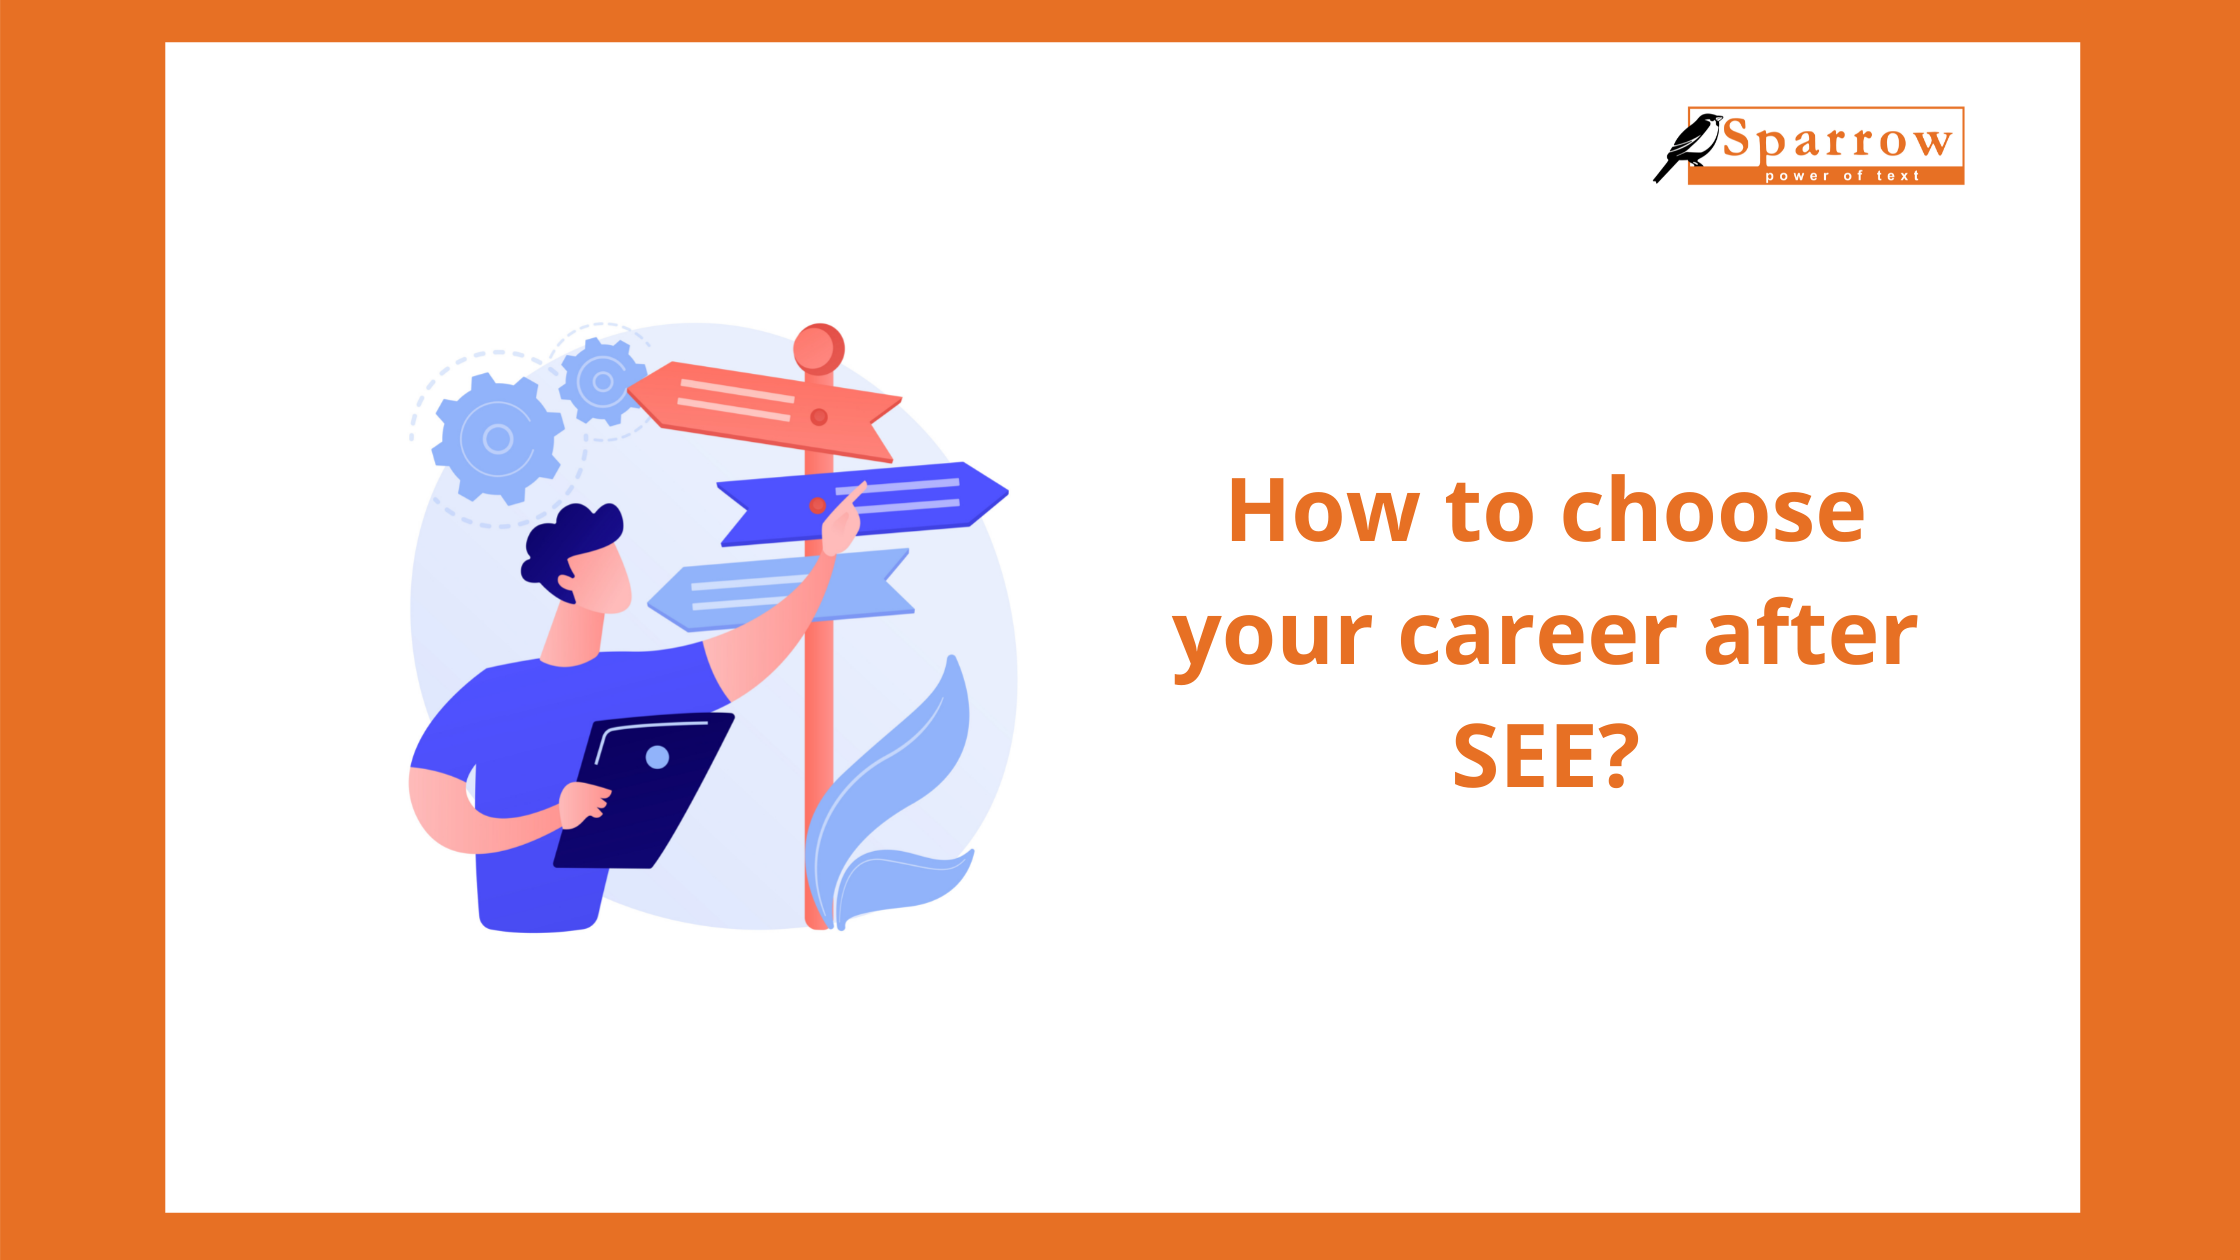 how to choose career after SEE